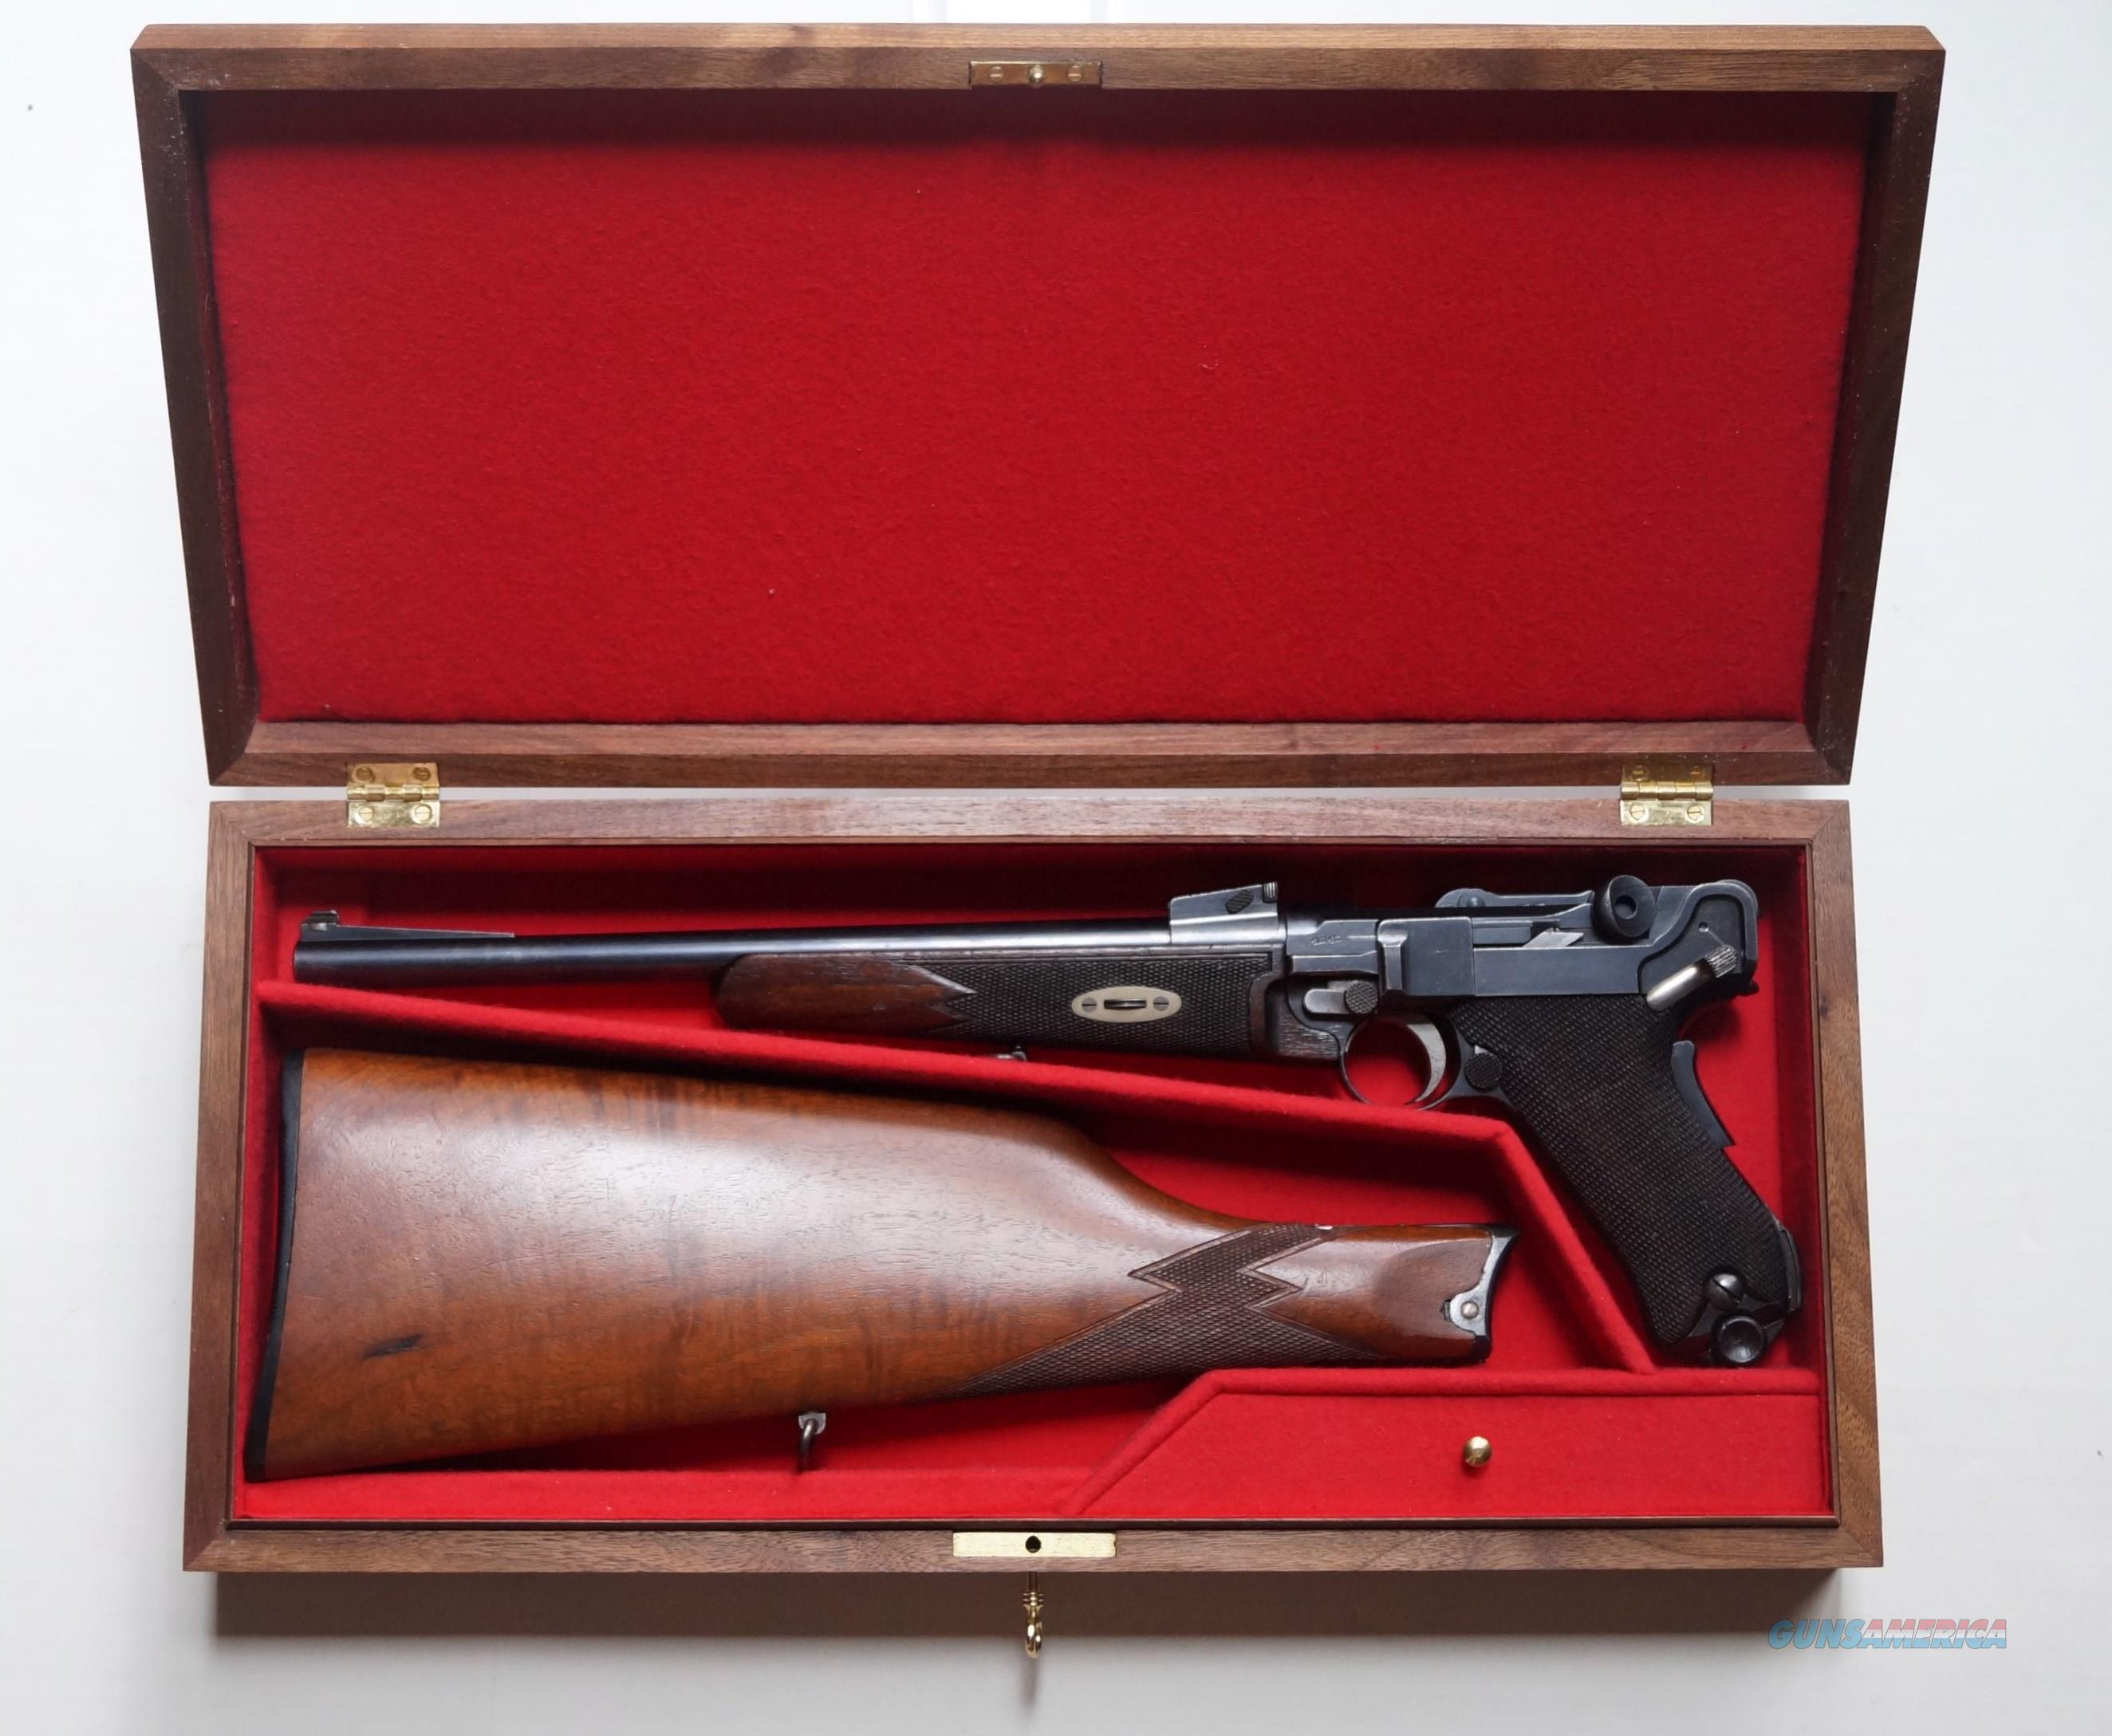 1902 DWM CARBINE W/ MATCHING # STOCK AND DISPLAY CASE  Guns > Pistols > Luger Pistols